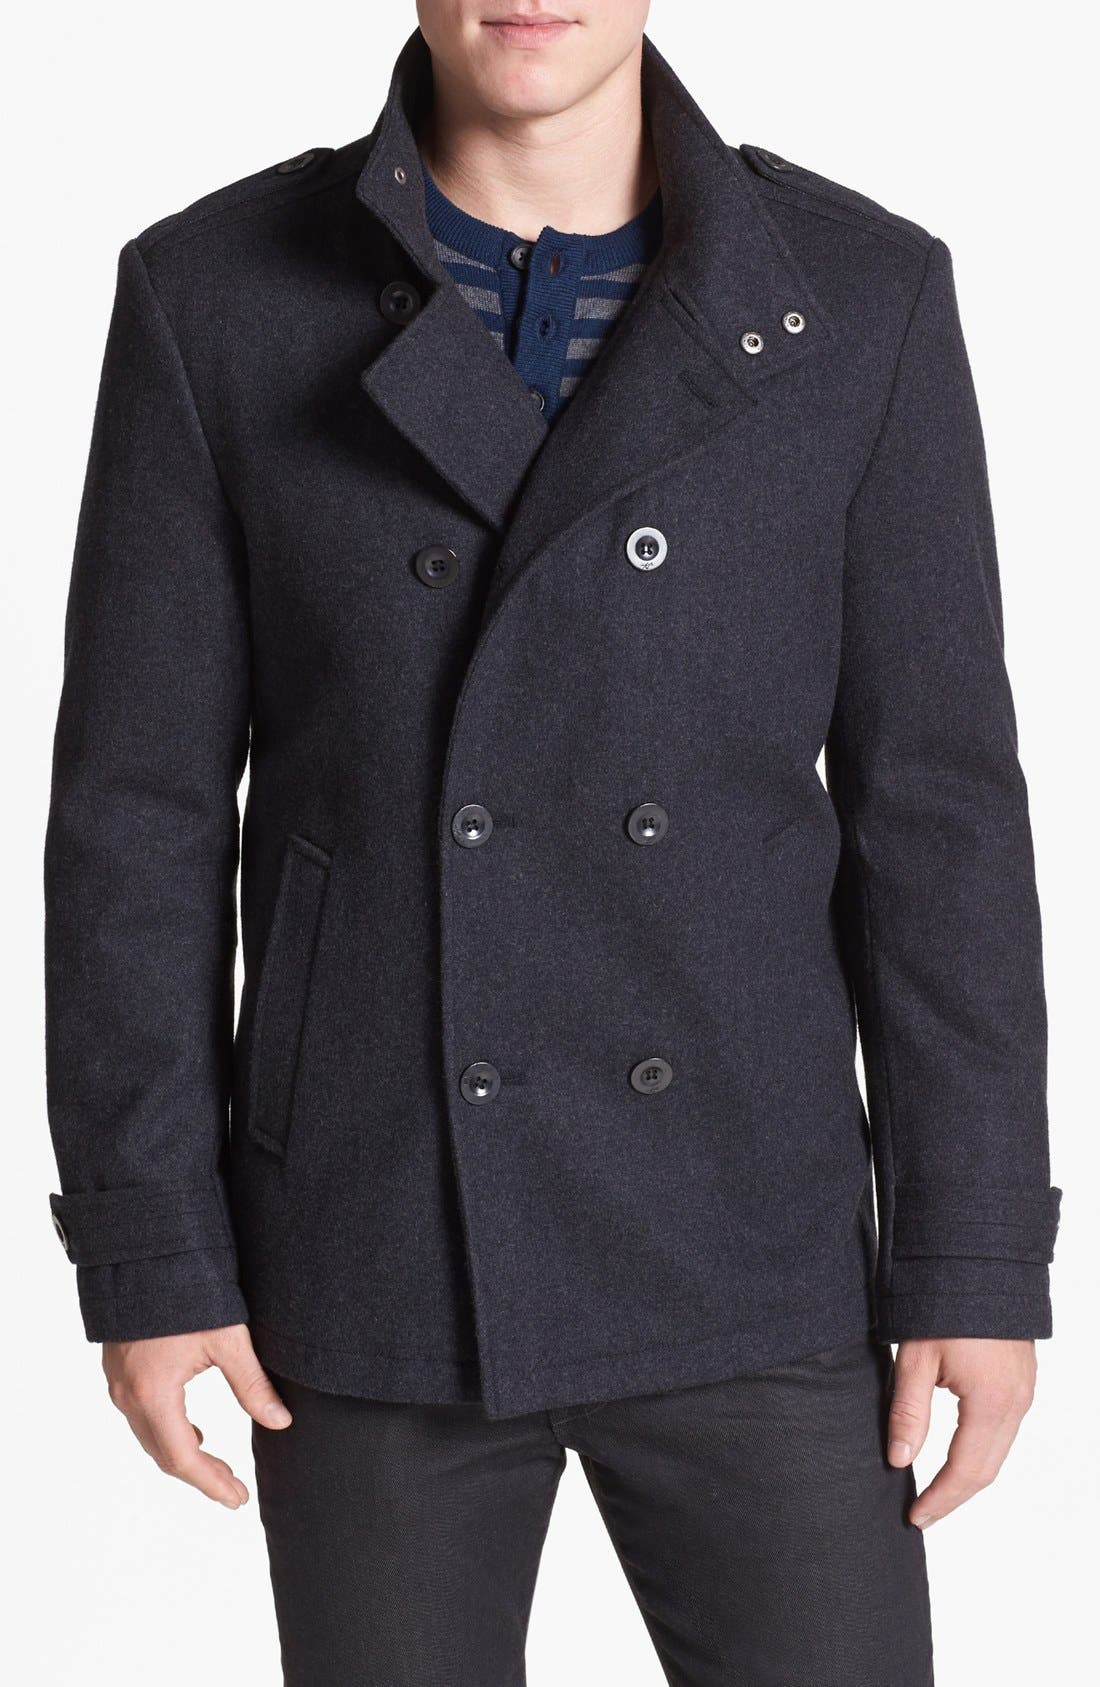 Alternate Image 1 Selected - Kenneth Cole New York Melton Wool Peacoat